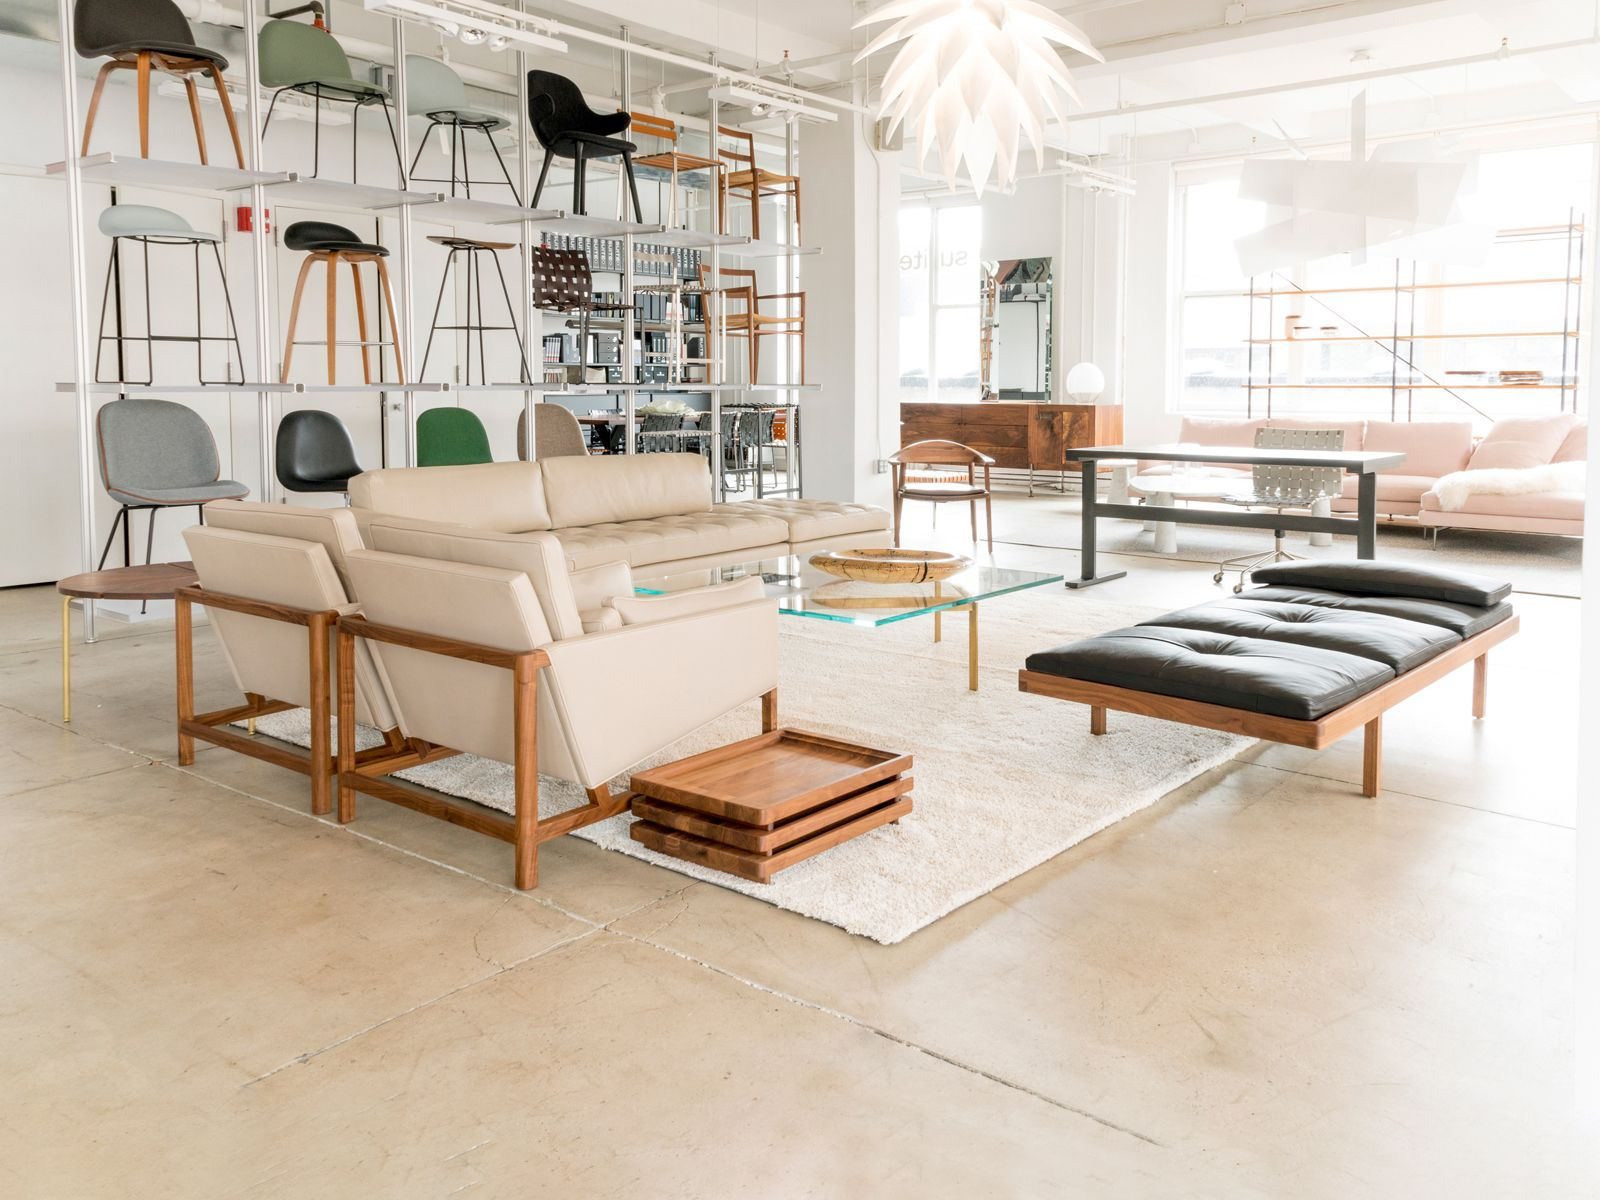 SUITE NY Offers A Curated Collection Of Modern Furniture, Lighting And Home  Accessories Including Iconic Italian And Scandinavian Design And  Contemporary ...